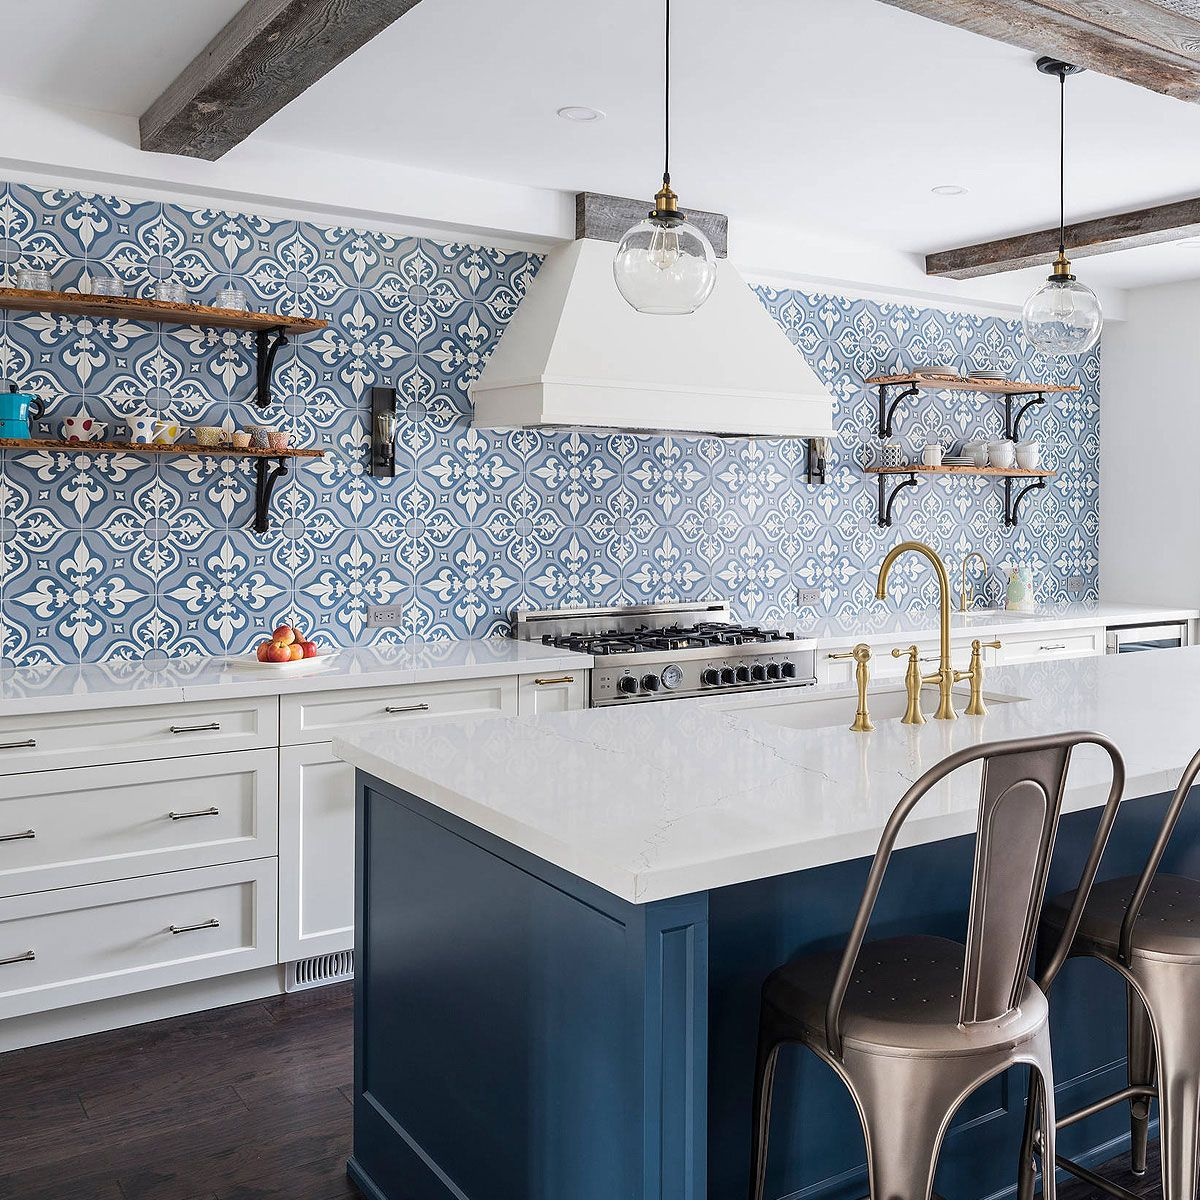 75 Blue Backsplash Ideas Navy Aqua Royal Or Coastal Blue